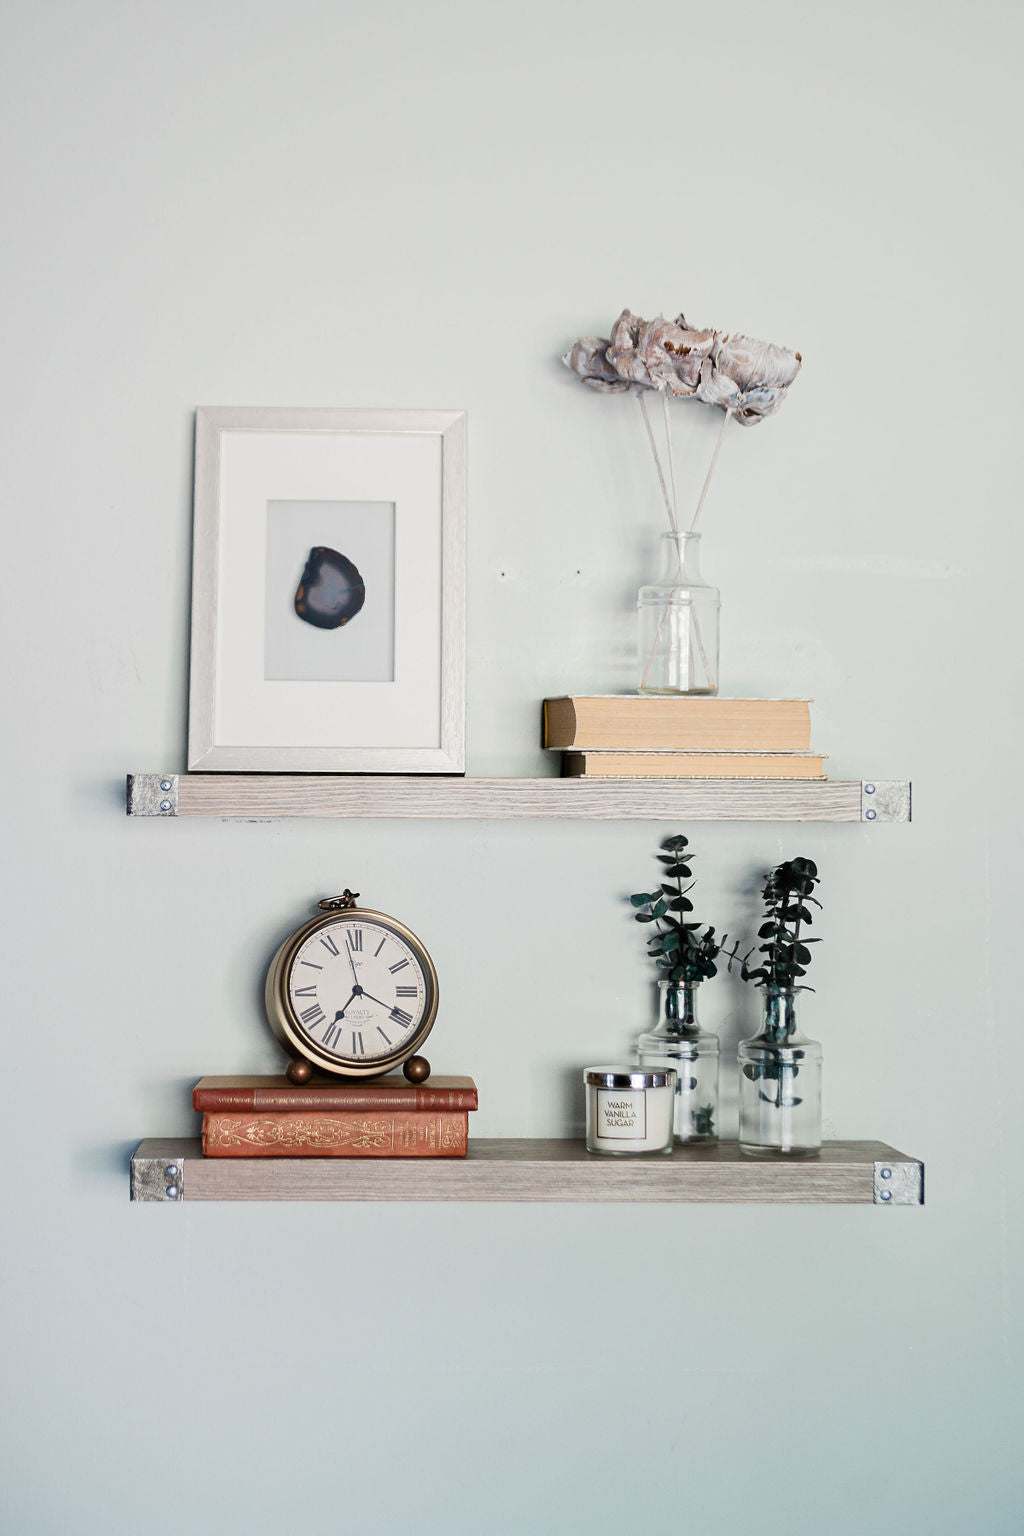 Create a Gallery Wall with Your Shelves